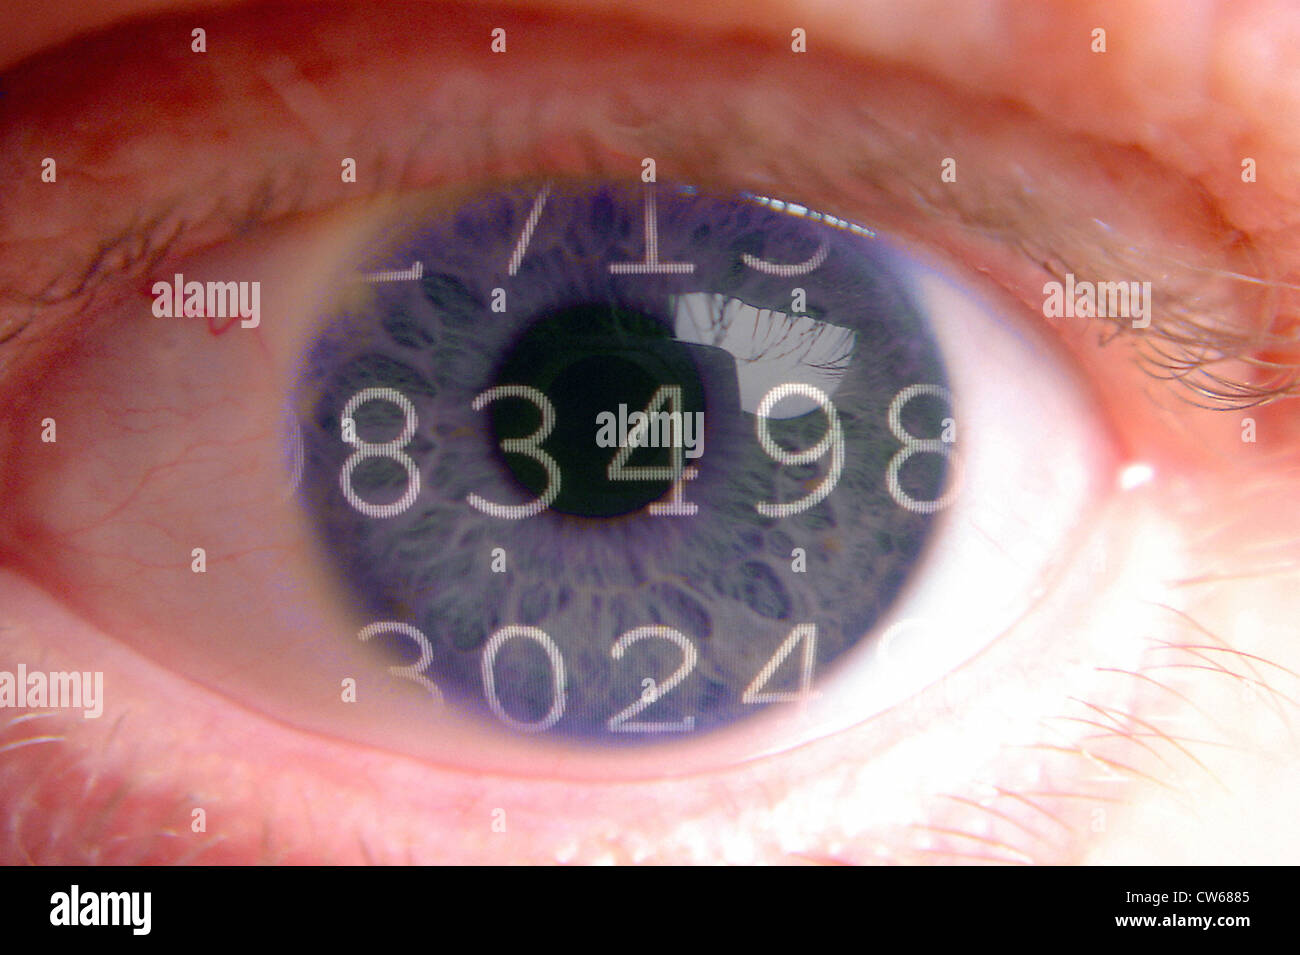 stored data in a eye - Stock Image